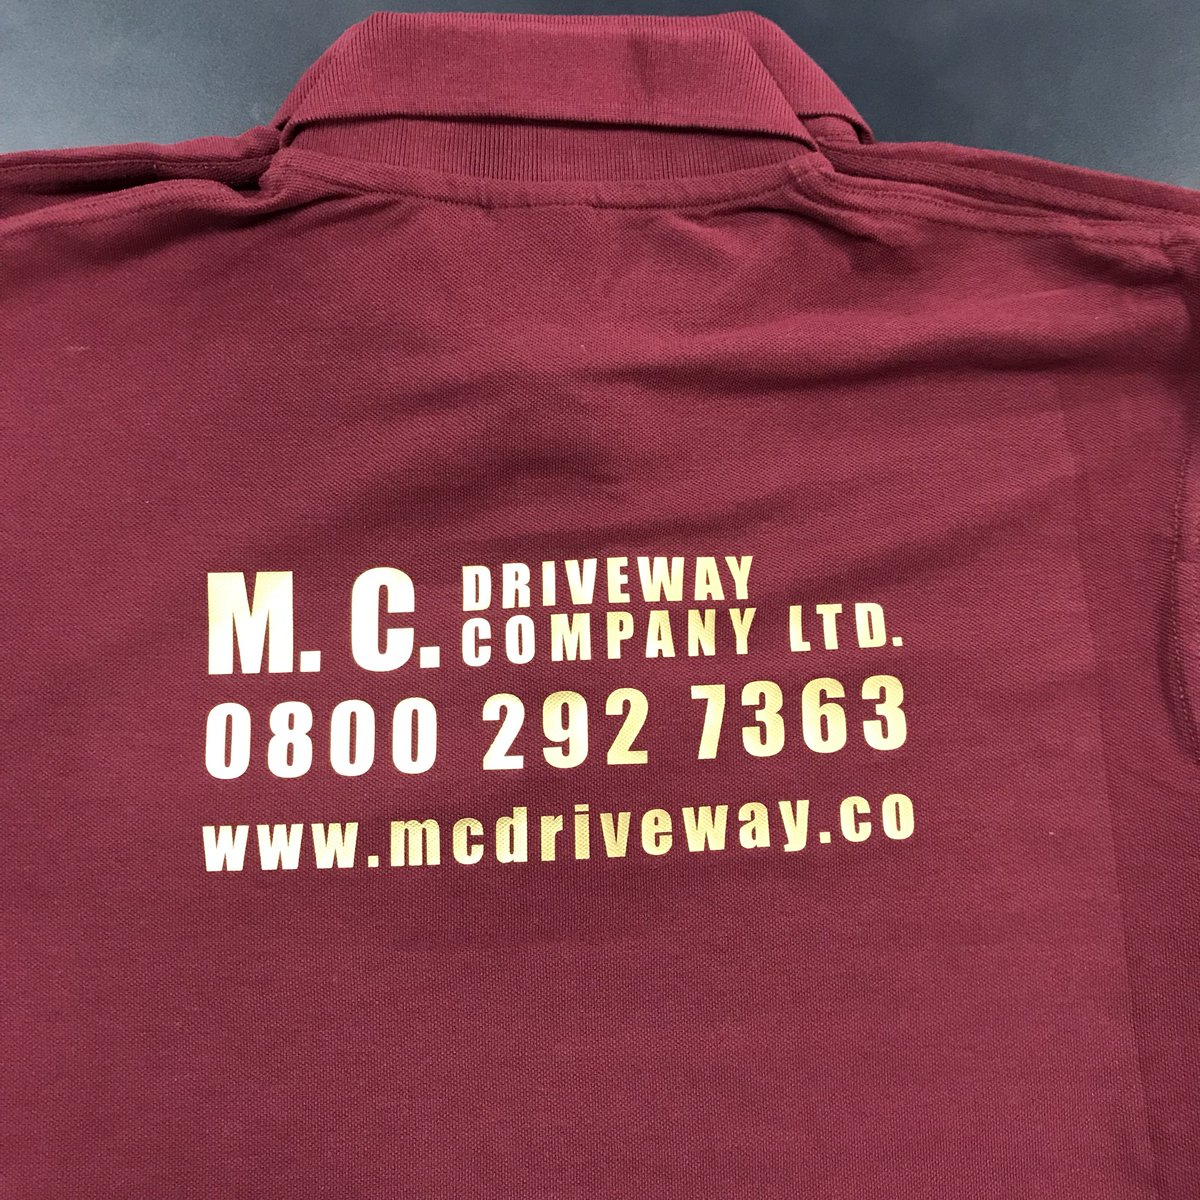 Workwear Crew On Twitter Polo Shirts Are A Great Way To Promote